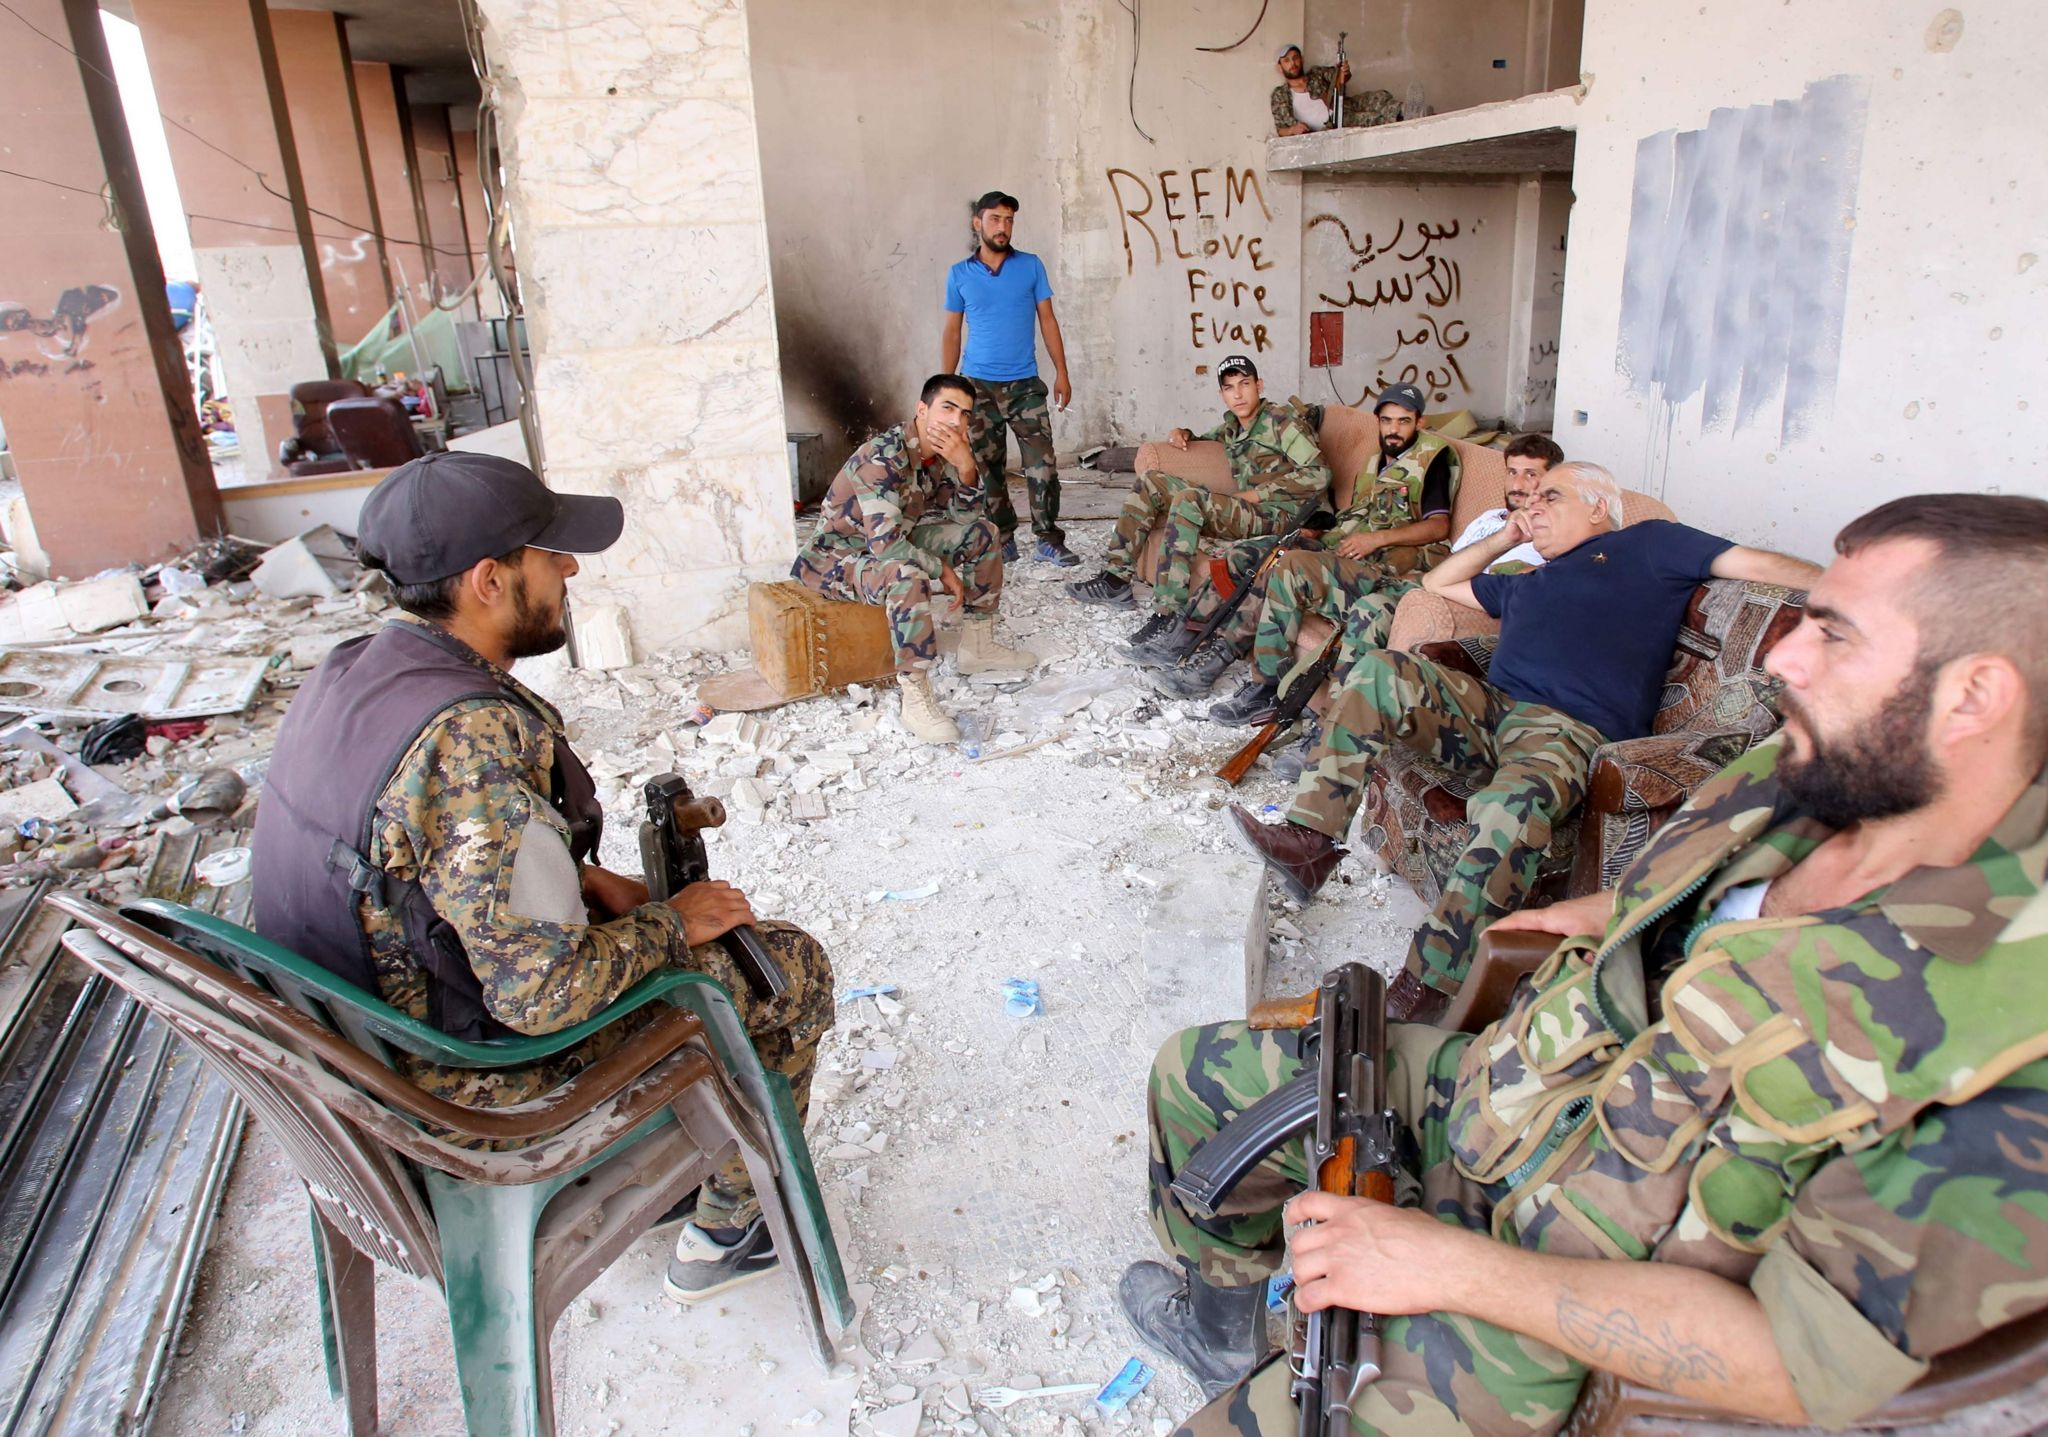 Syrian army soldiers gather at the entrance of a damaged building in the government-controlled part of the besieged town of Darayya, 26 August 2016